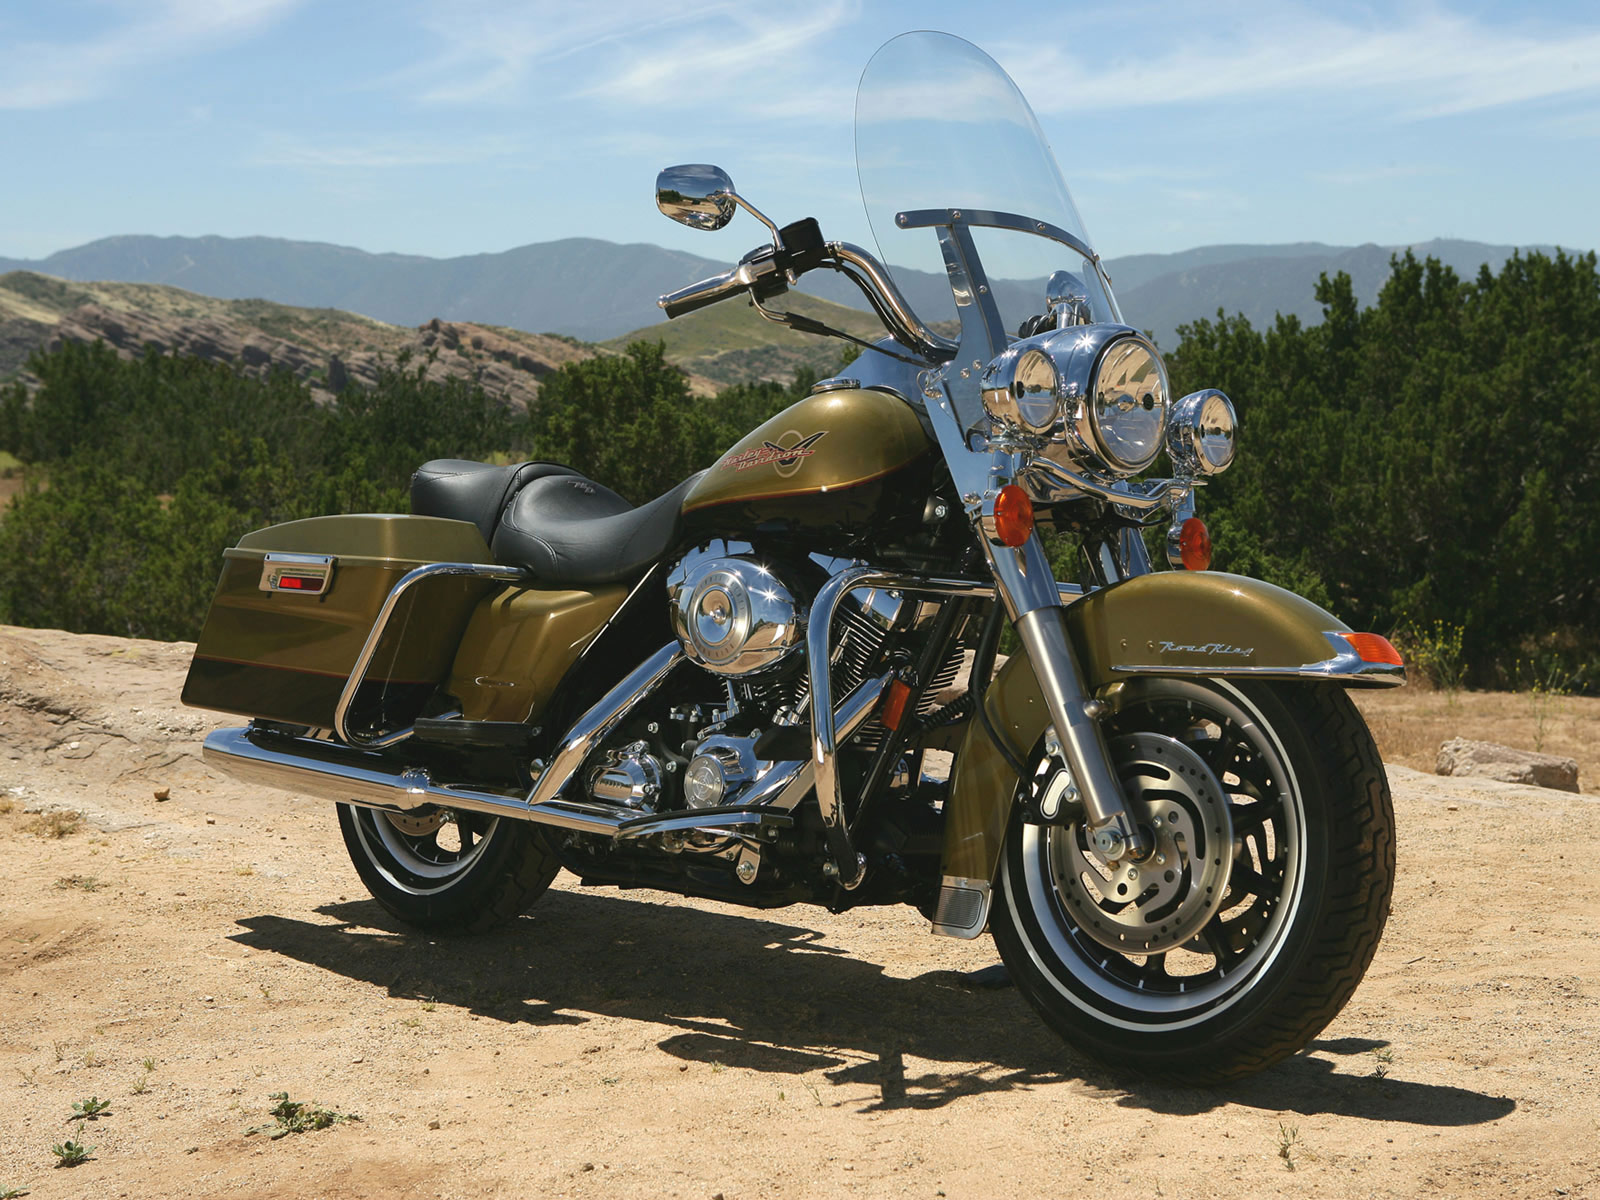 flhr road king accident lawyers info 2007 harley davidson. Black Bedroom Furniture Sets. Home Design Ideas